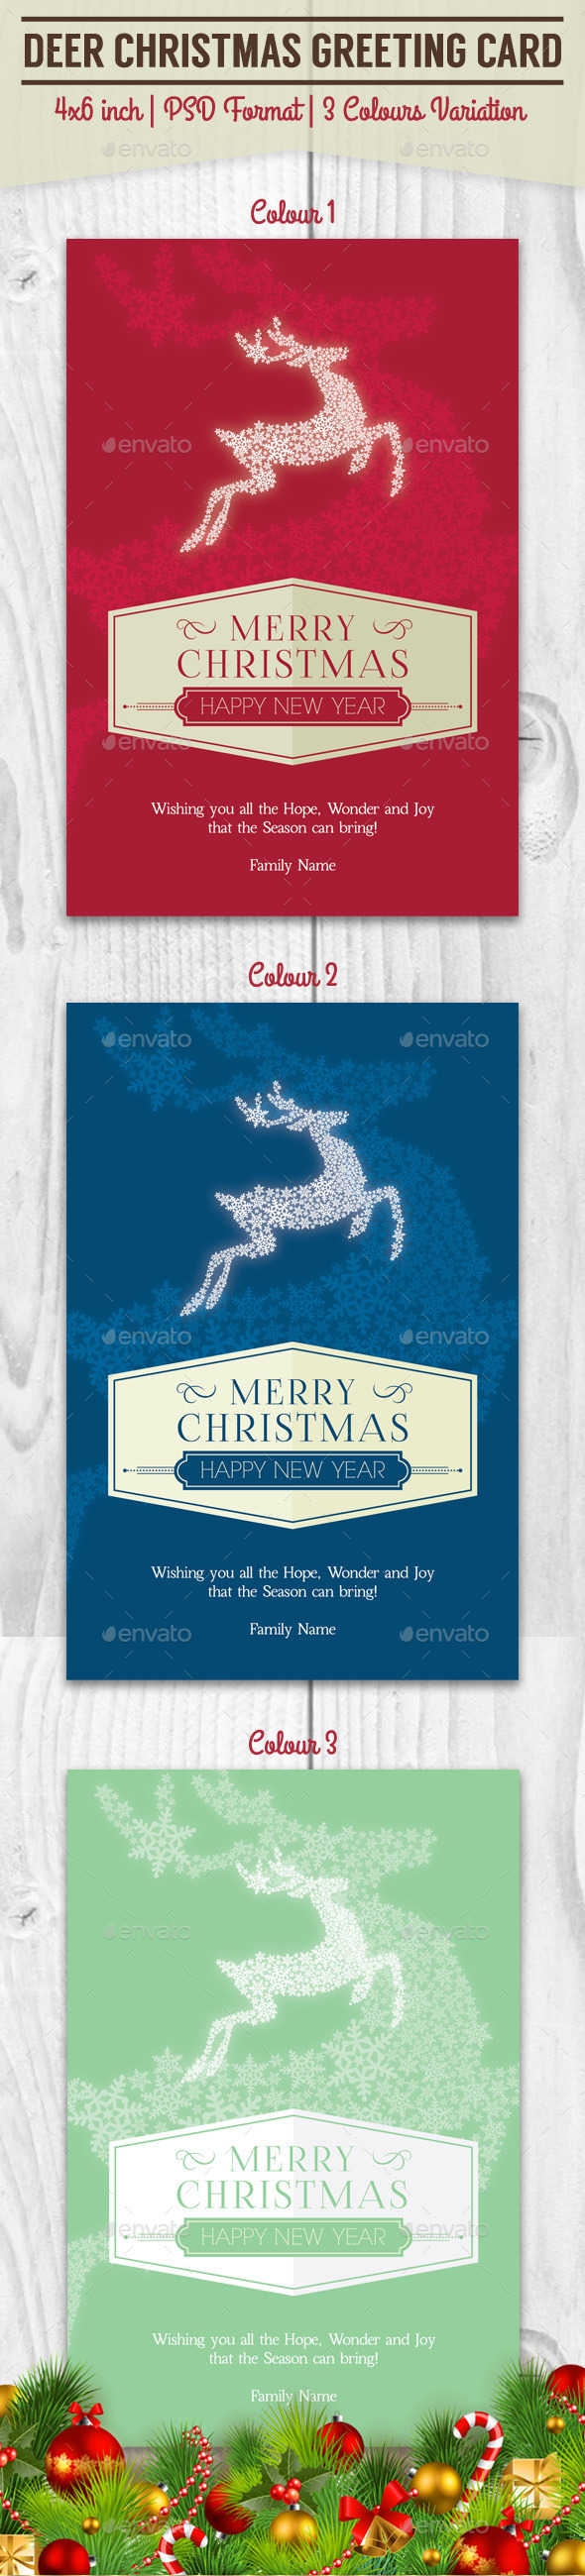 Deer Christmas Greeting Card - Greeting Cards Cards & Invites